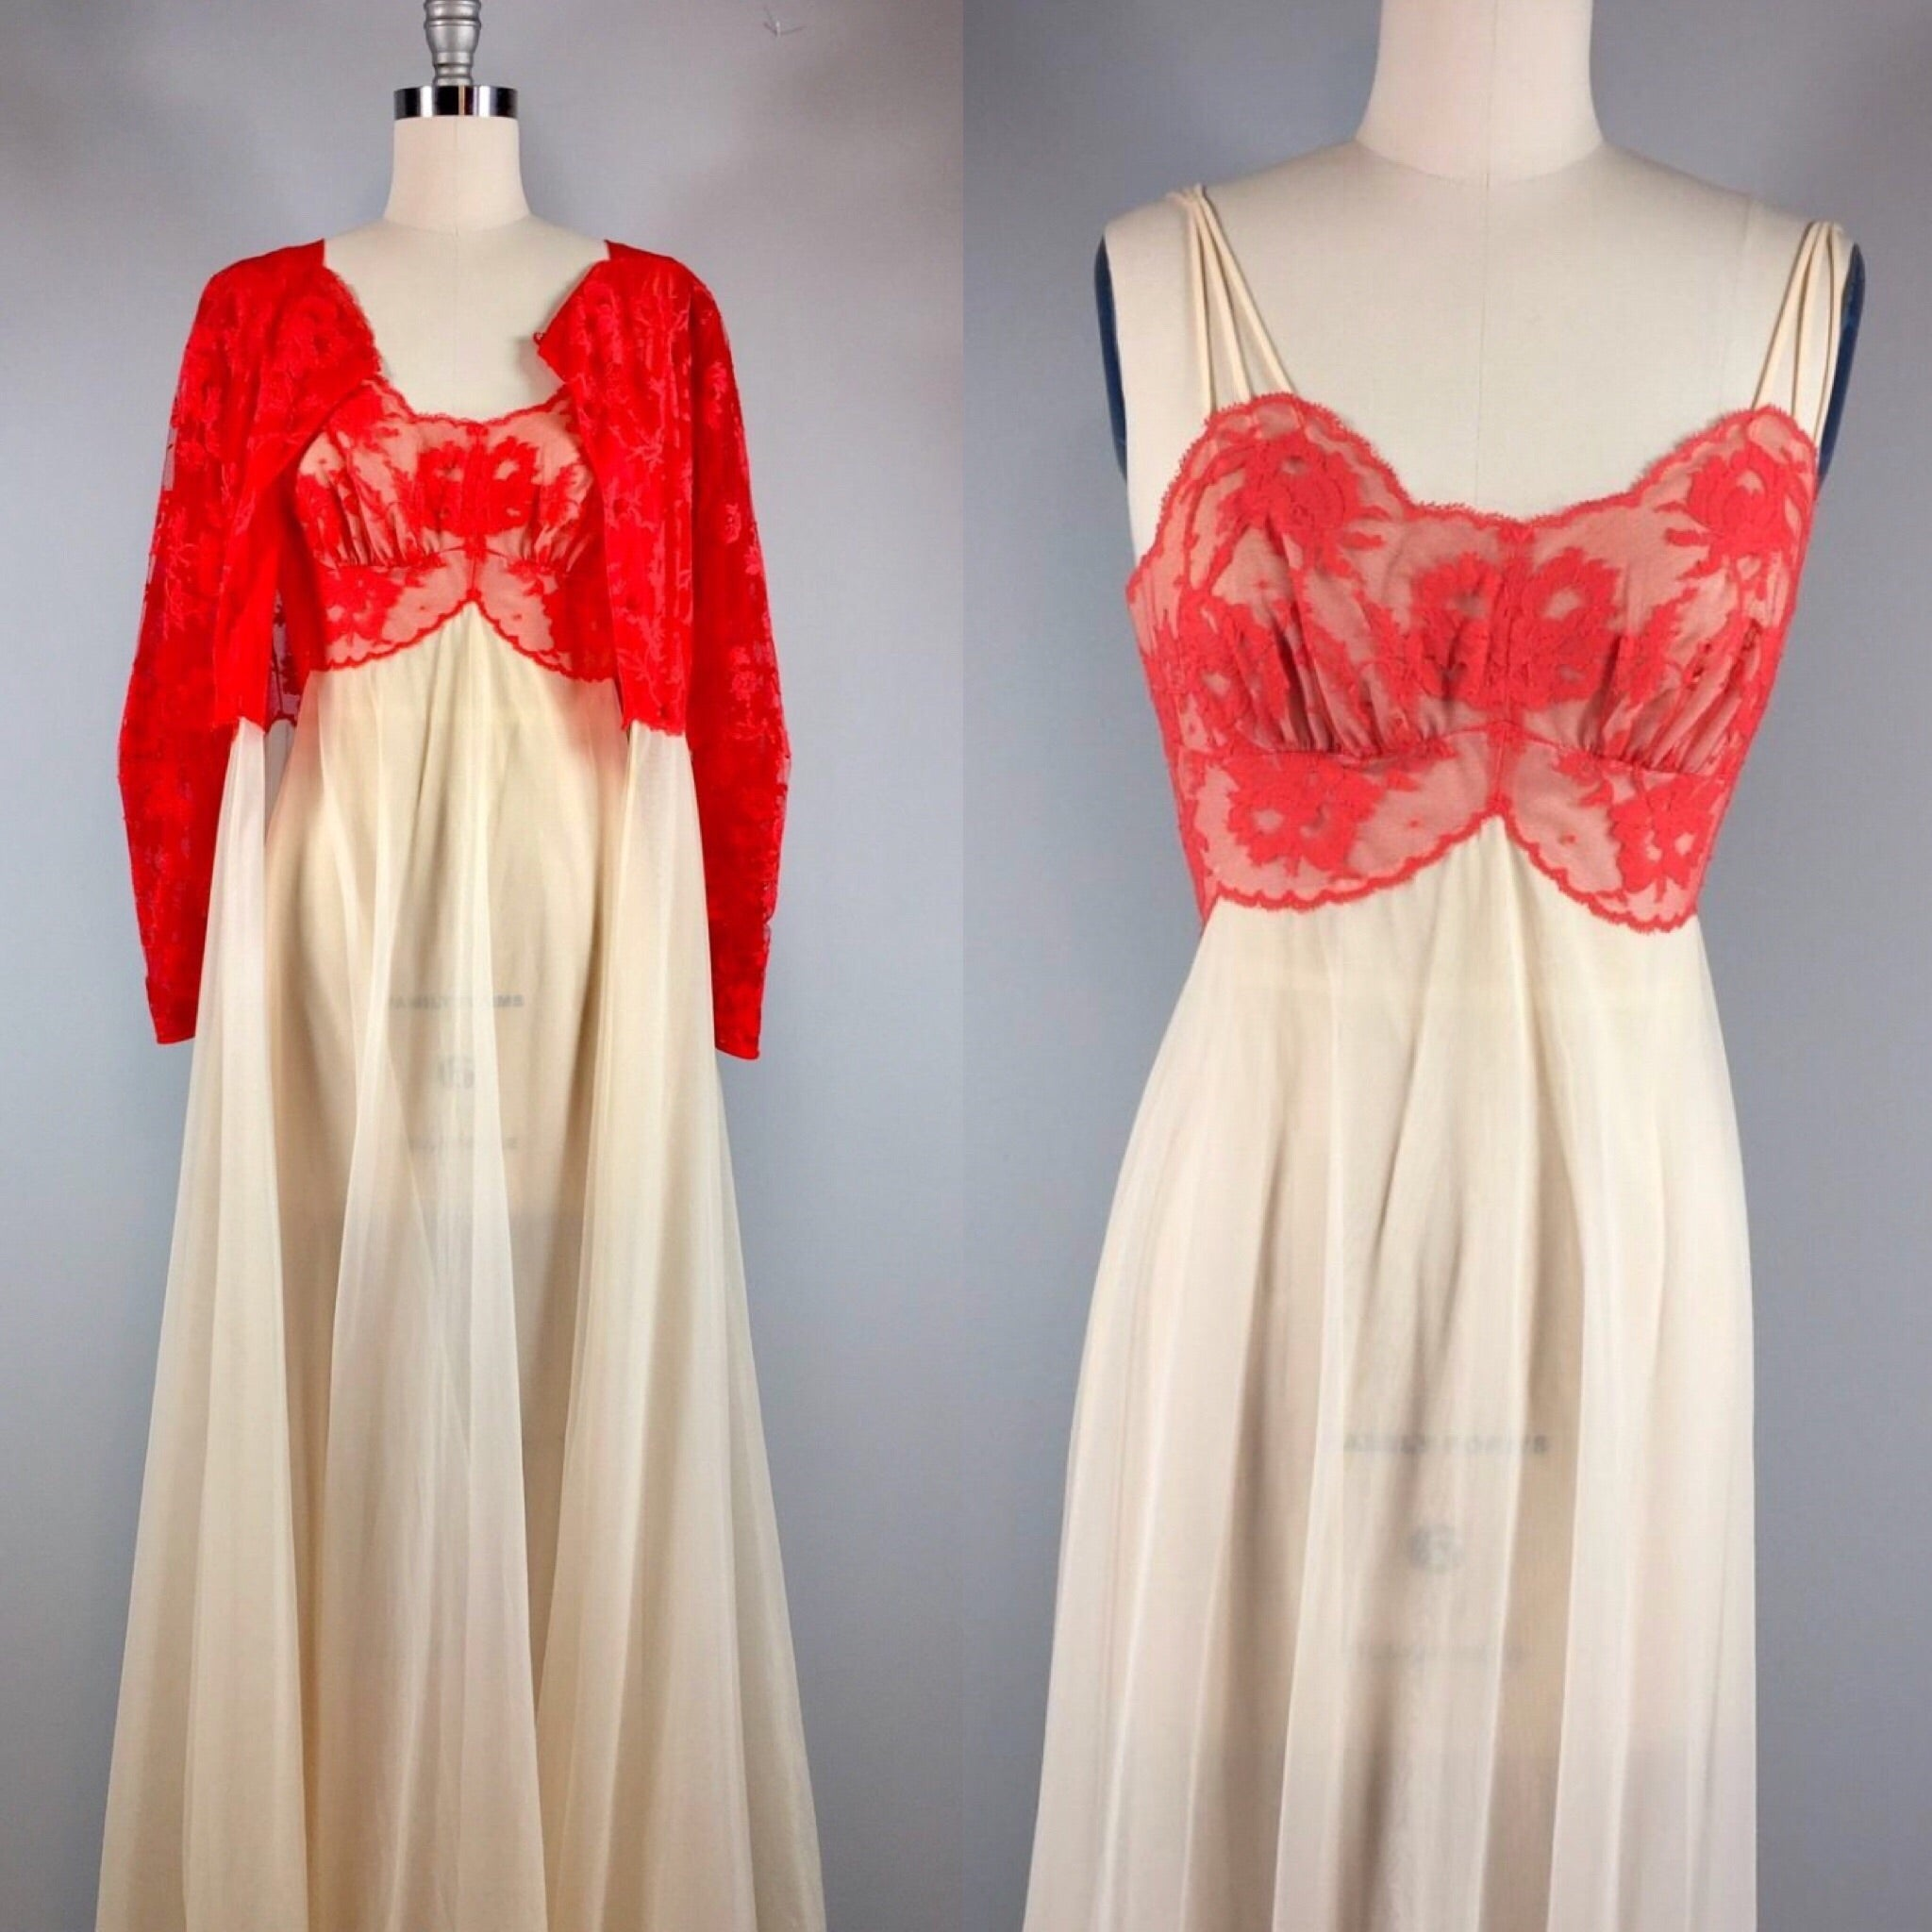 9e1d99744 Vanity Fair 50s Negligee Vintage Red White Lace Peignoir Night Gown Robe Set  32 Bust